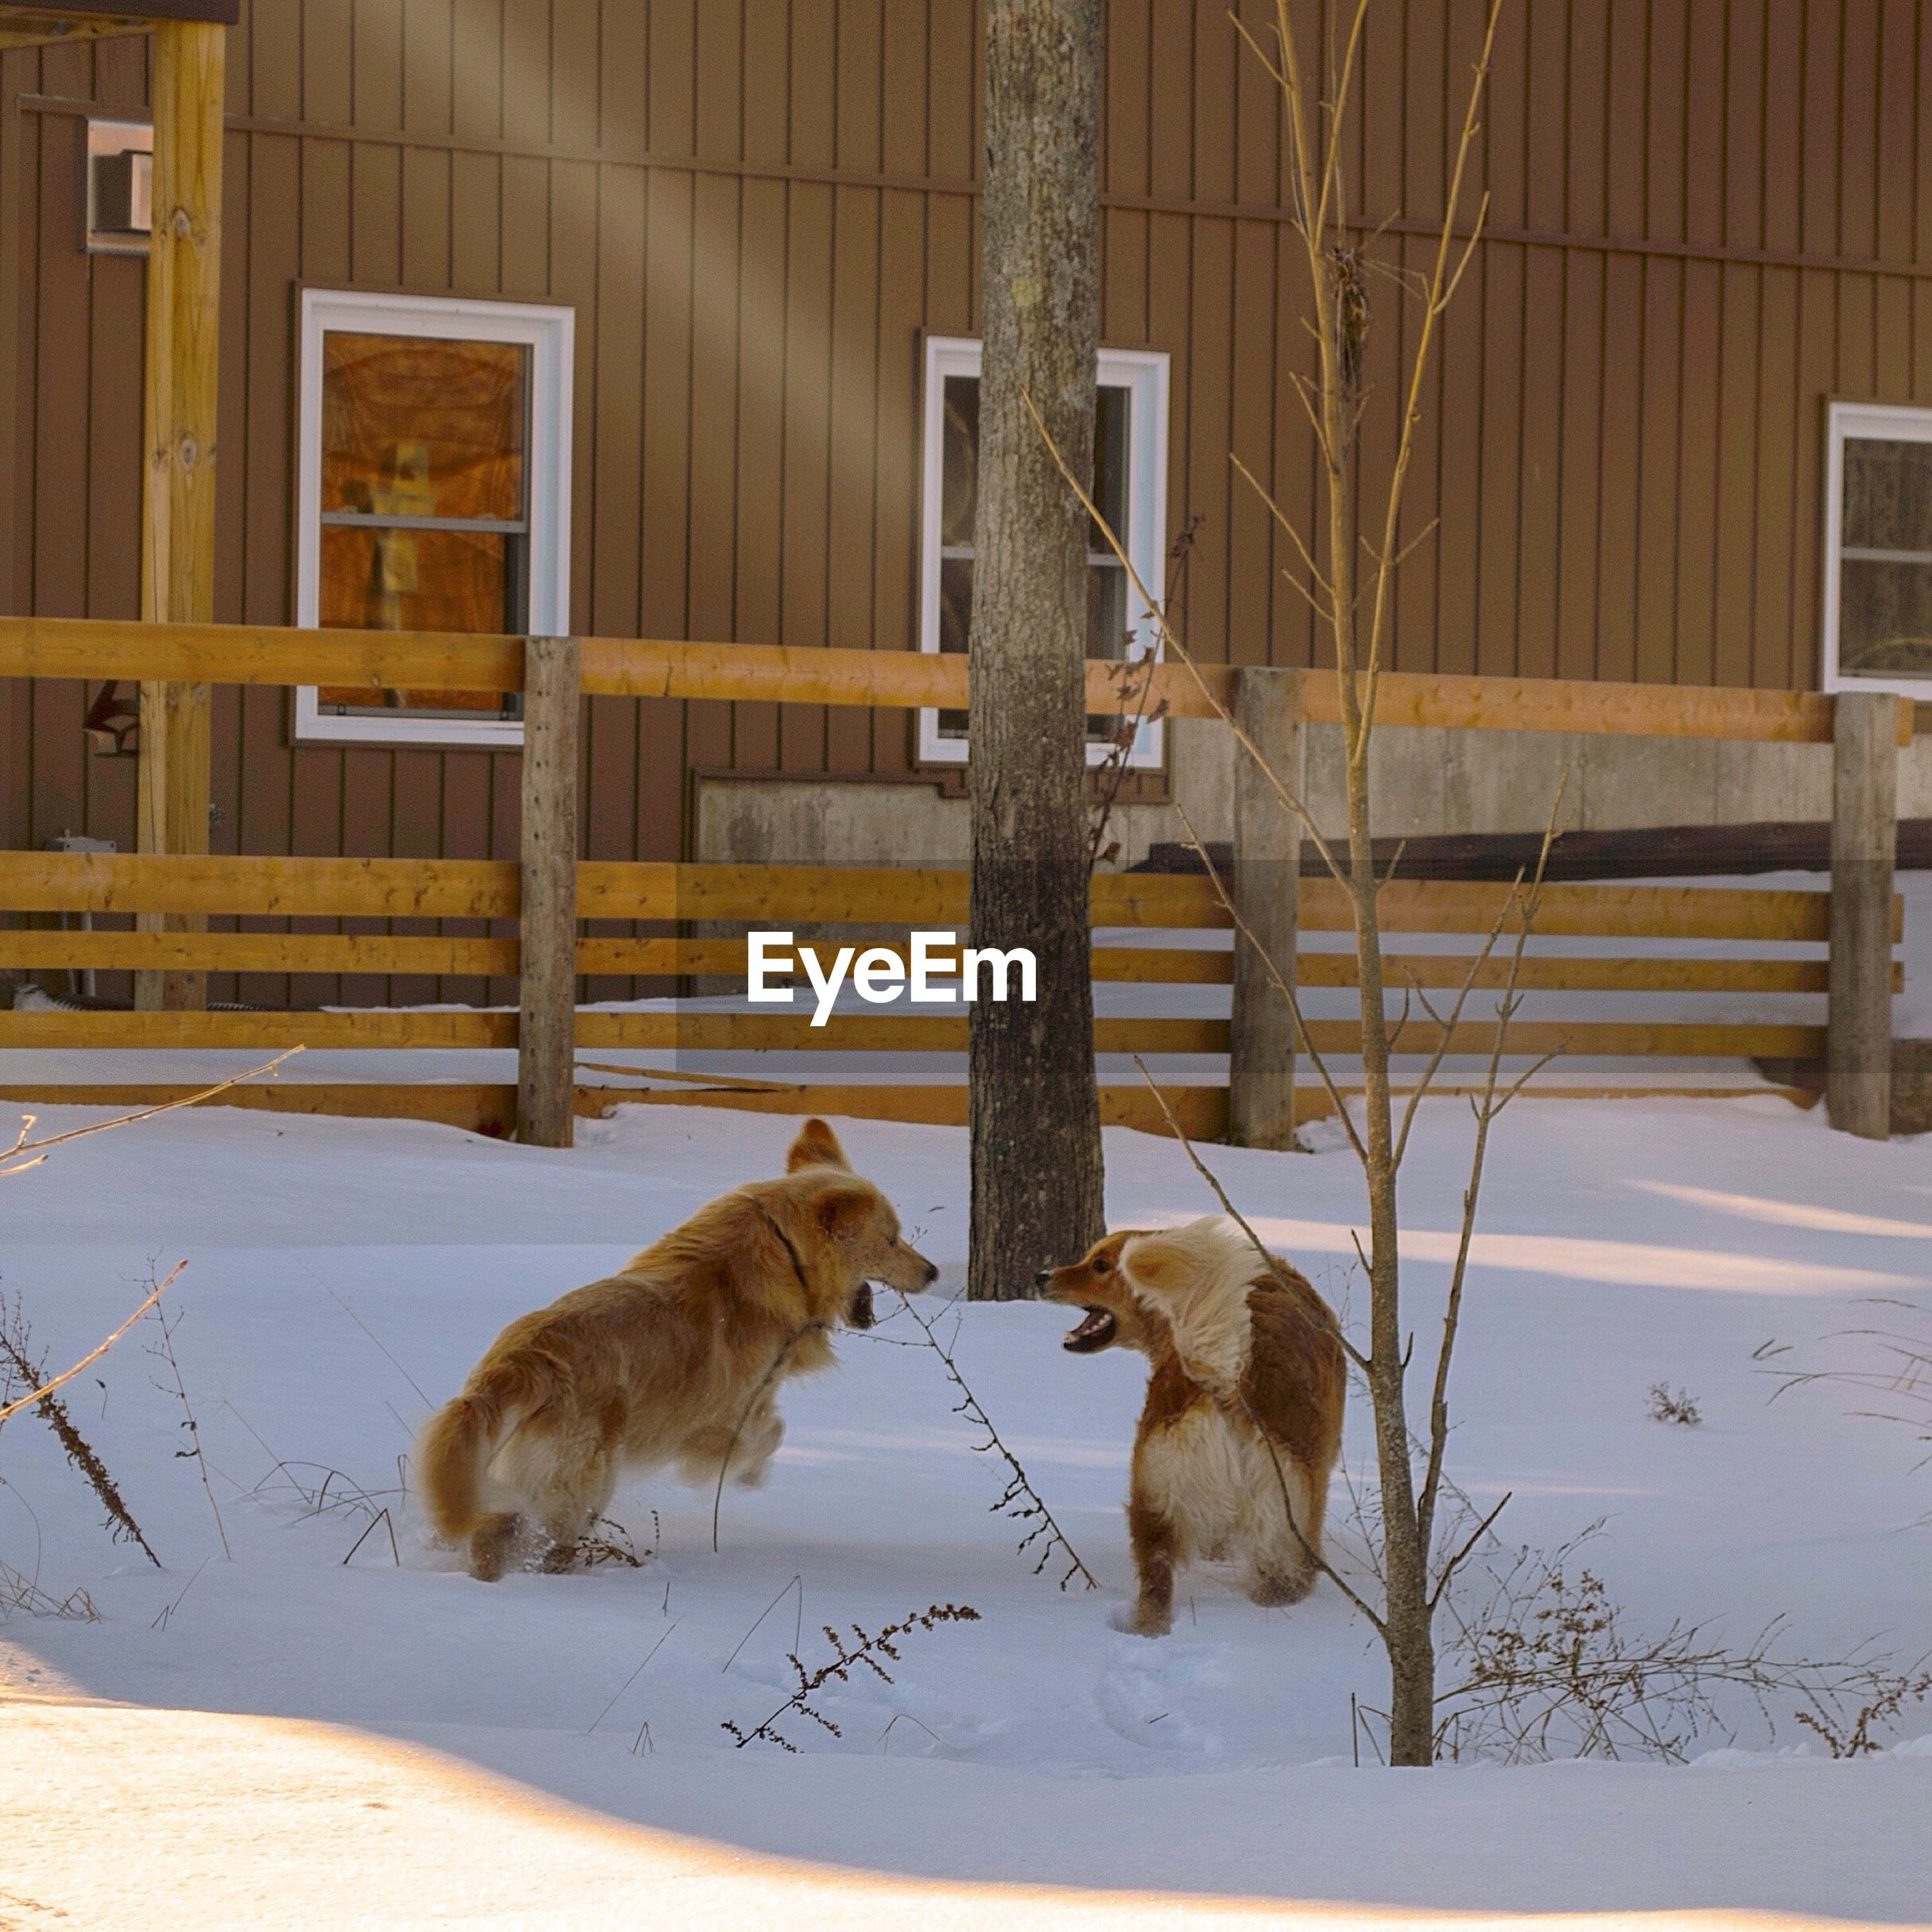 Dogs standing on snowy field